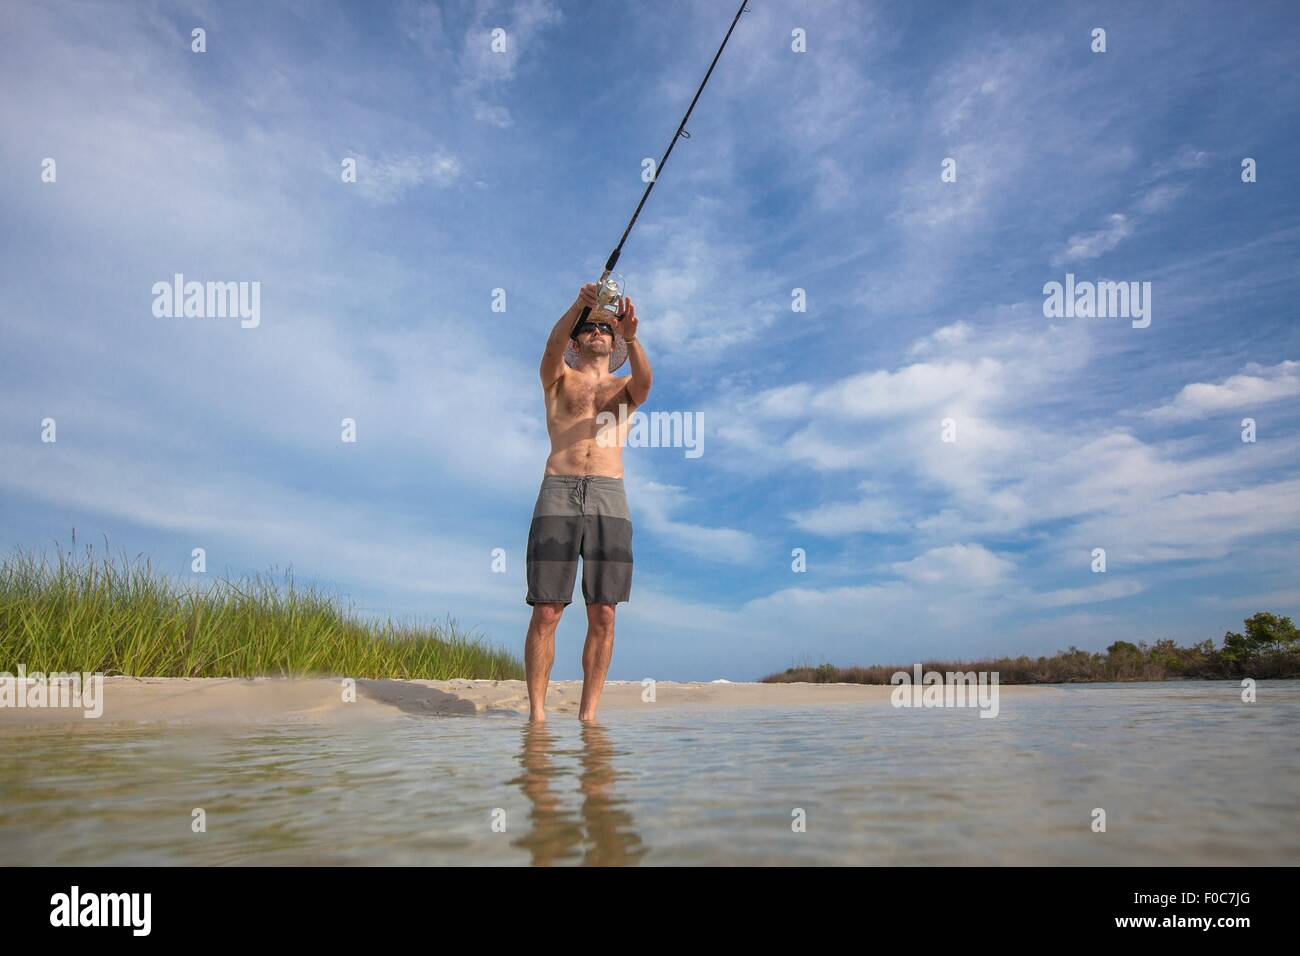 Low angle view of mature man fishing, Fort Walton, Florida, USA - Stock Image